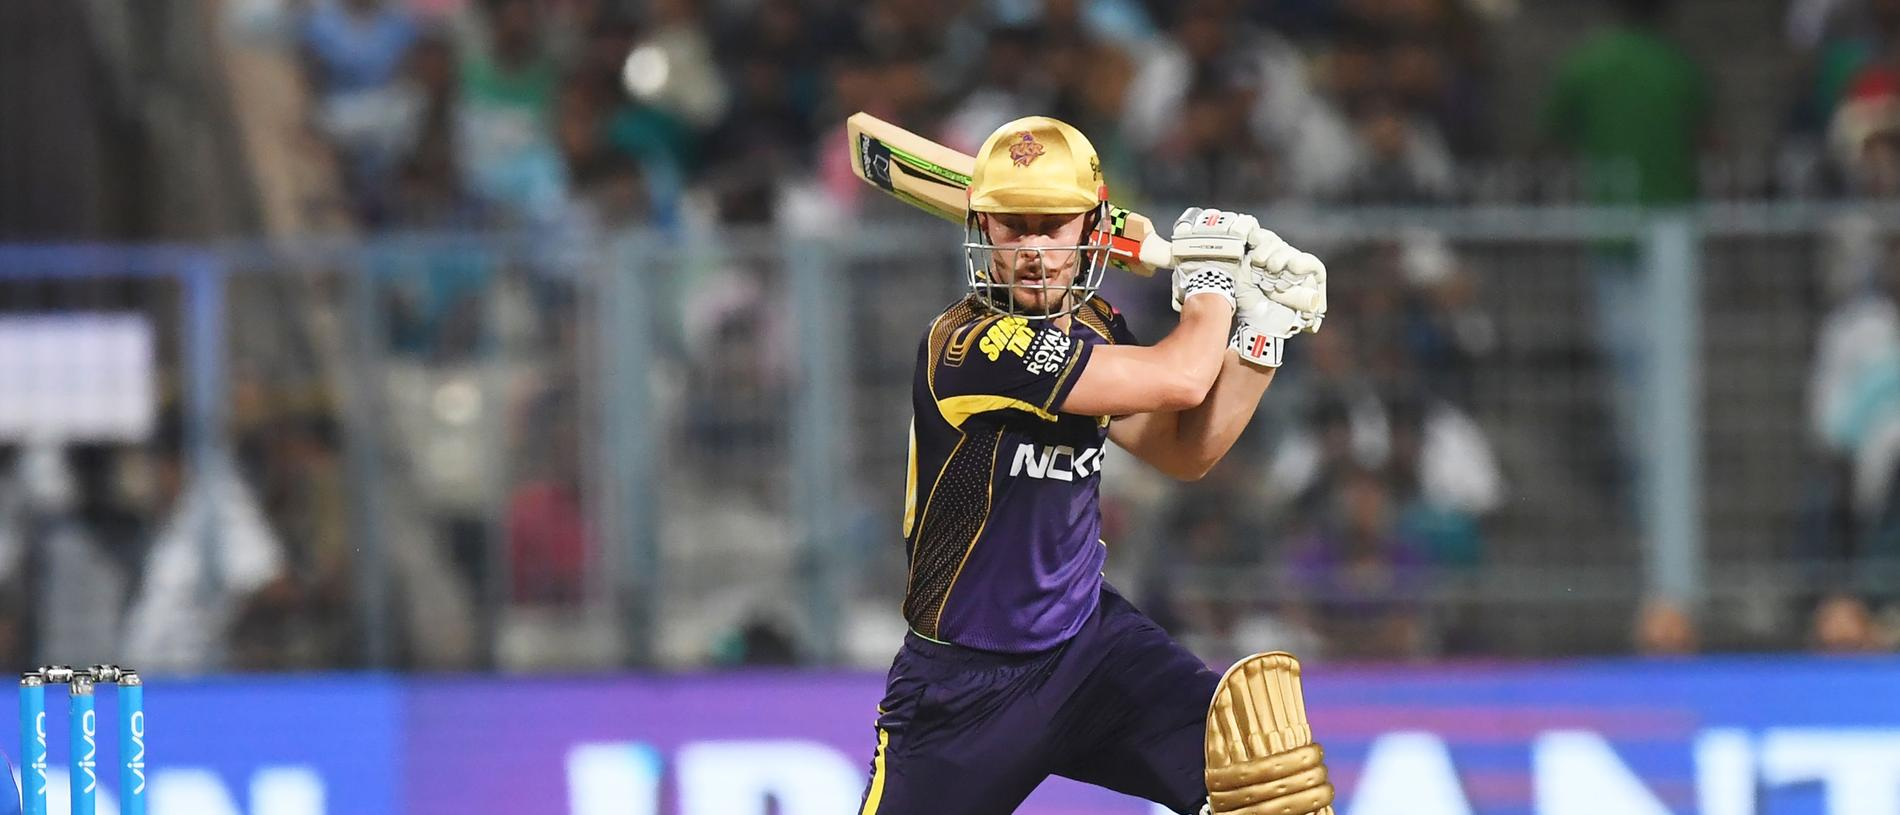 Kolkata Knight Riders cricketer Chris Lynn plays a shot during the 2018 Indian Premier League(IPL) Twenty20 first eliminator cricket match between Kolkata Knight Riders and Rajasthan Royals at the Eden Gardens Cricket Stadium in Kolkata on May 23, 2018. / AFP PHOTO / Dibyangshu SARKAR / ----IMAGE RESTRICTED TO EDITORIAL USE - STRICTLY NO COMMERCIAL USE----- / GETTYOUT